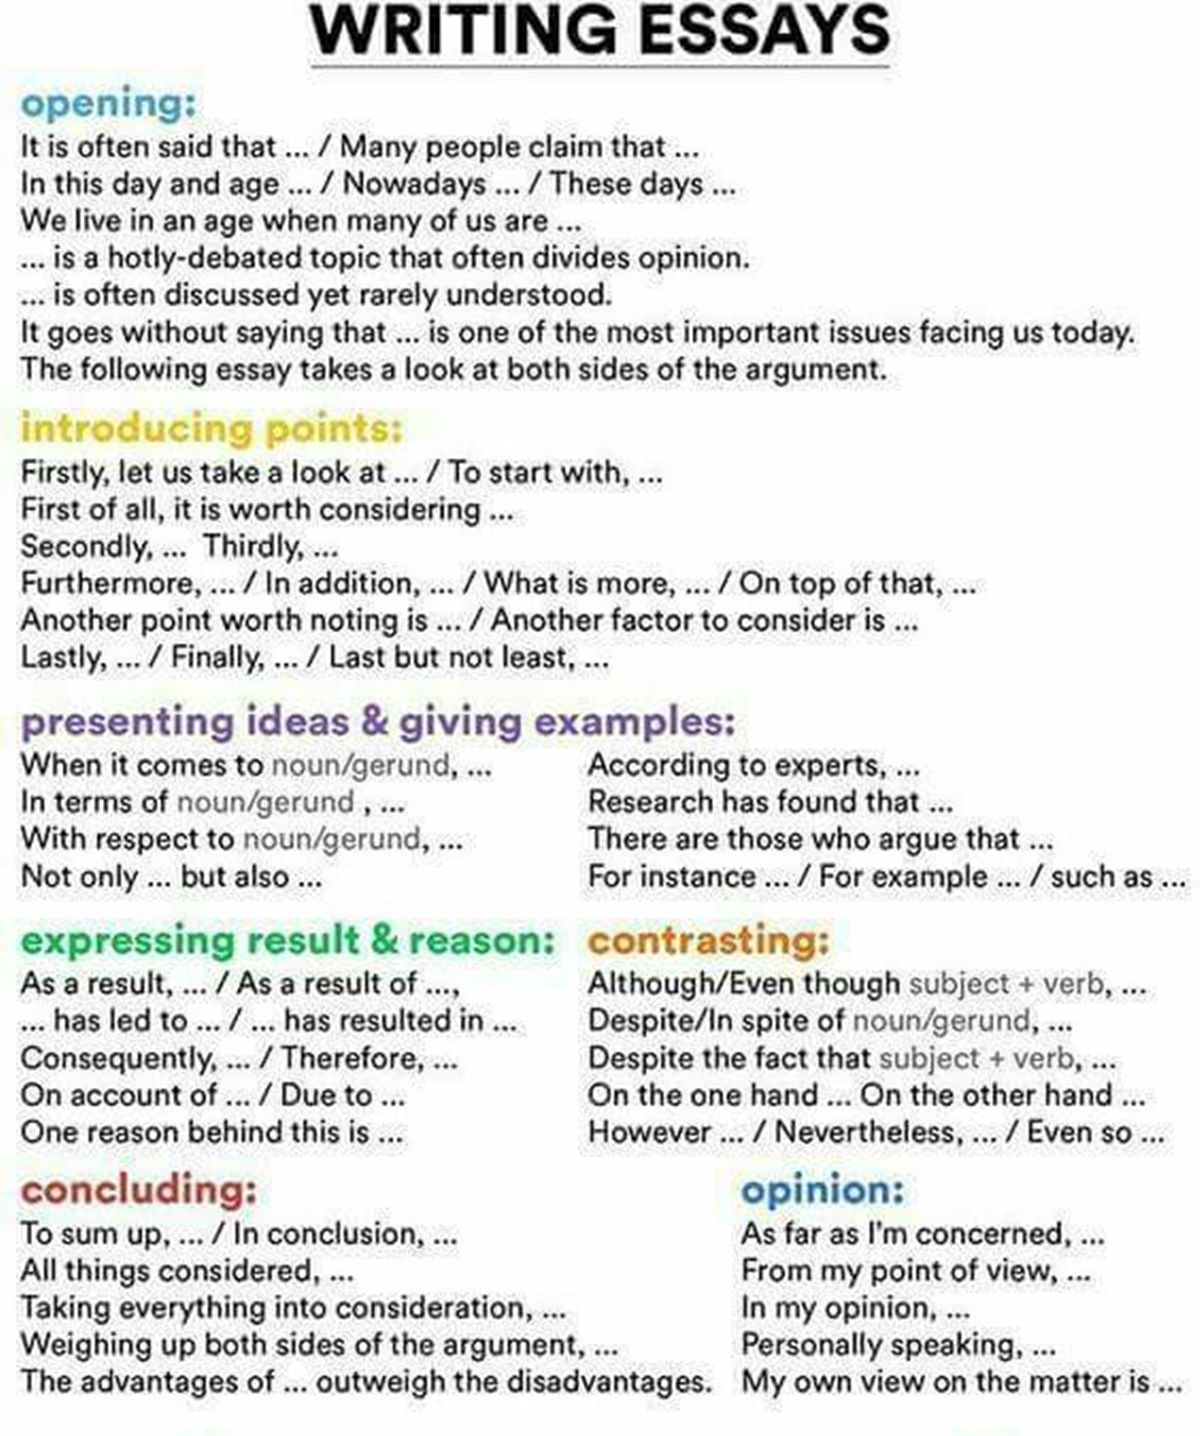 pin by chell rodica on learn english  essay writing skills english  pin by chell rodica on learn english  essay writing skills english  writing ielts writing essay of health also high school dropouts essay high school persuasive essay examples